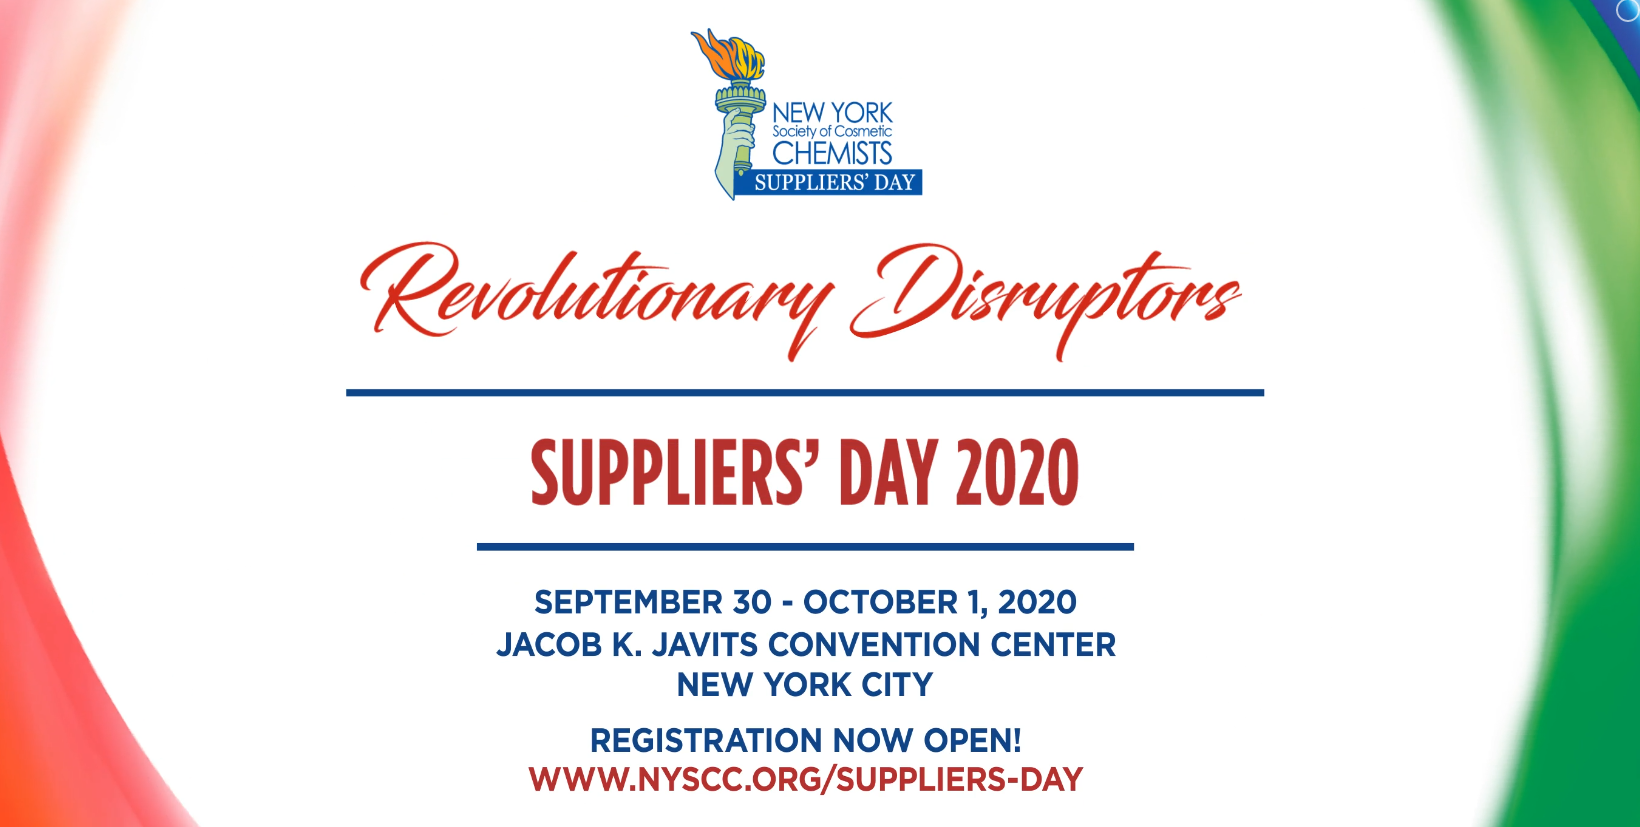 Suppliers' Day 2020 - NYSCC